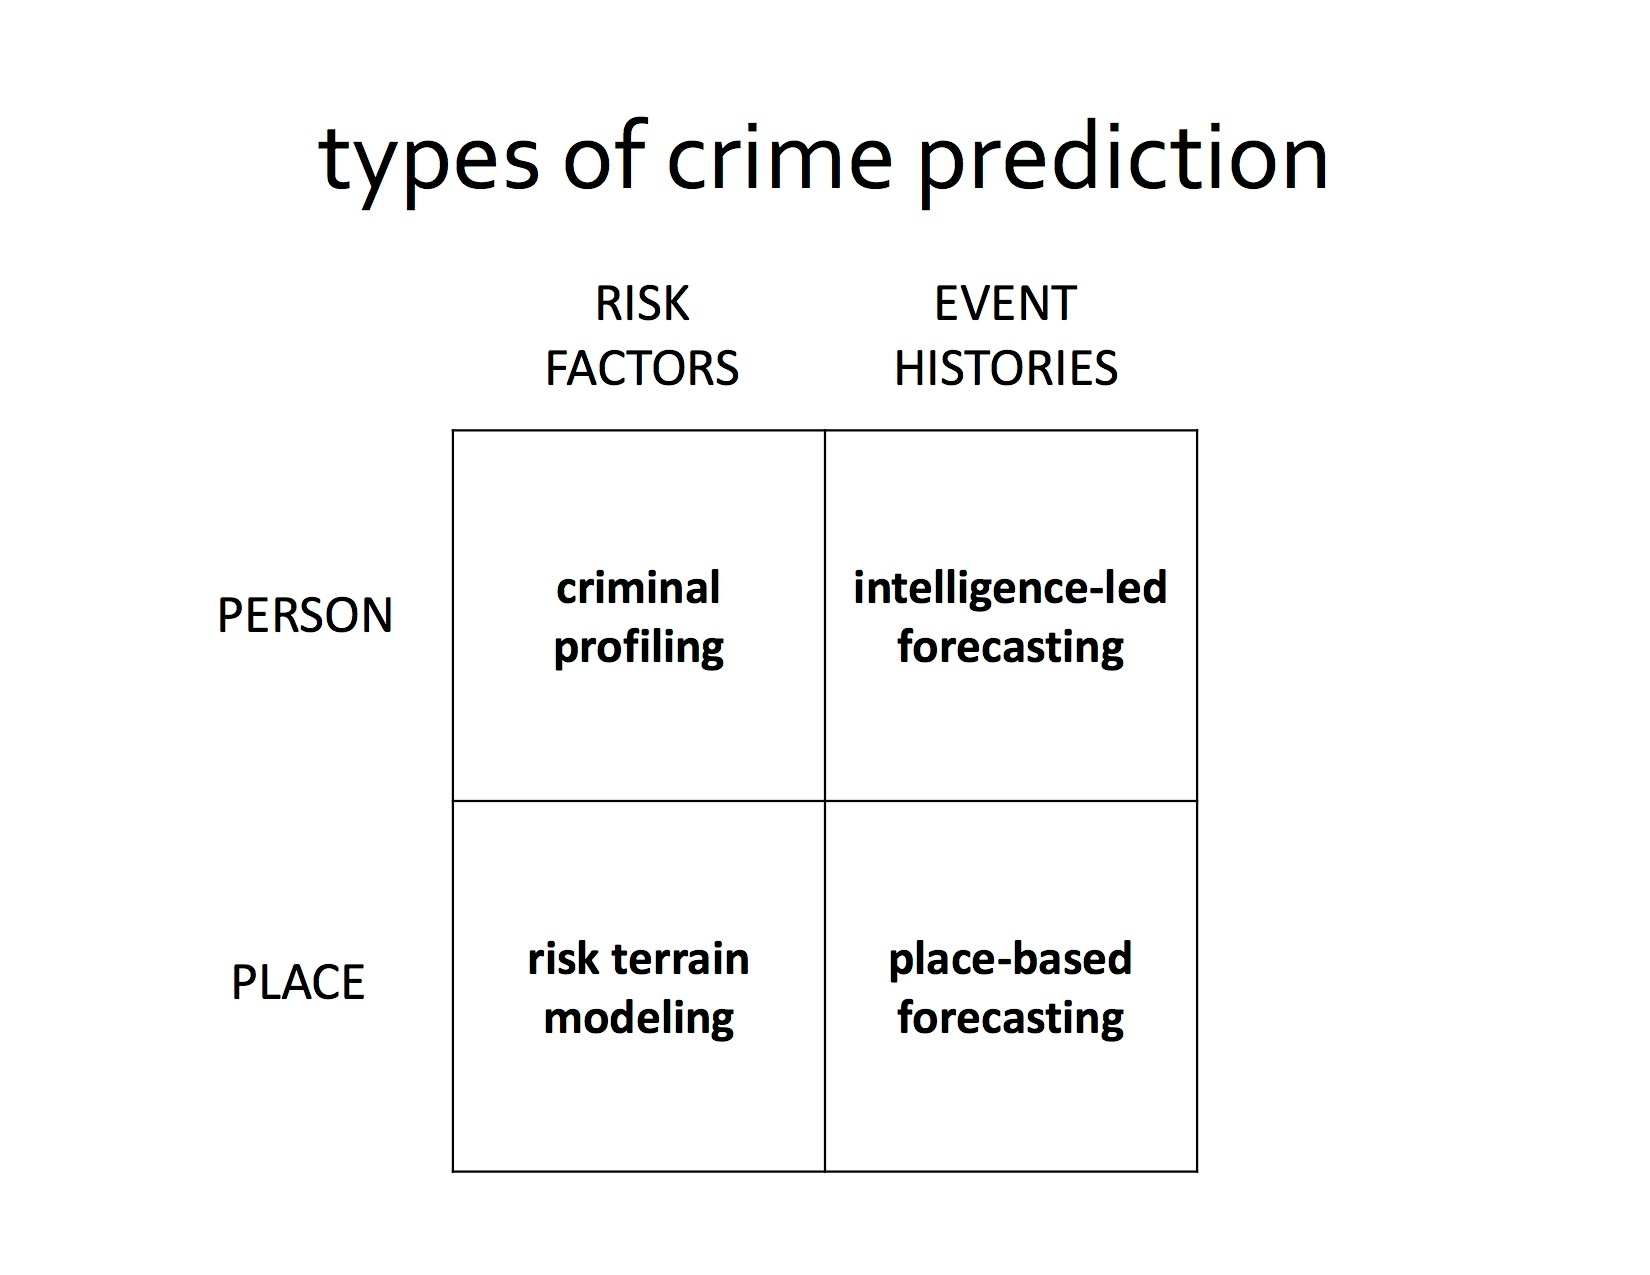 Types of Predictive Policing